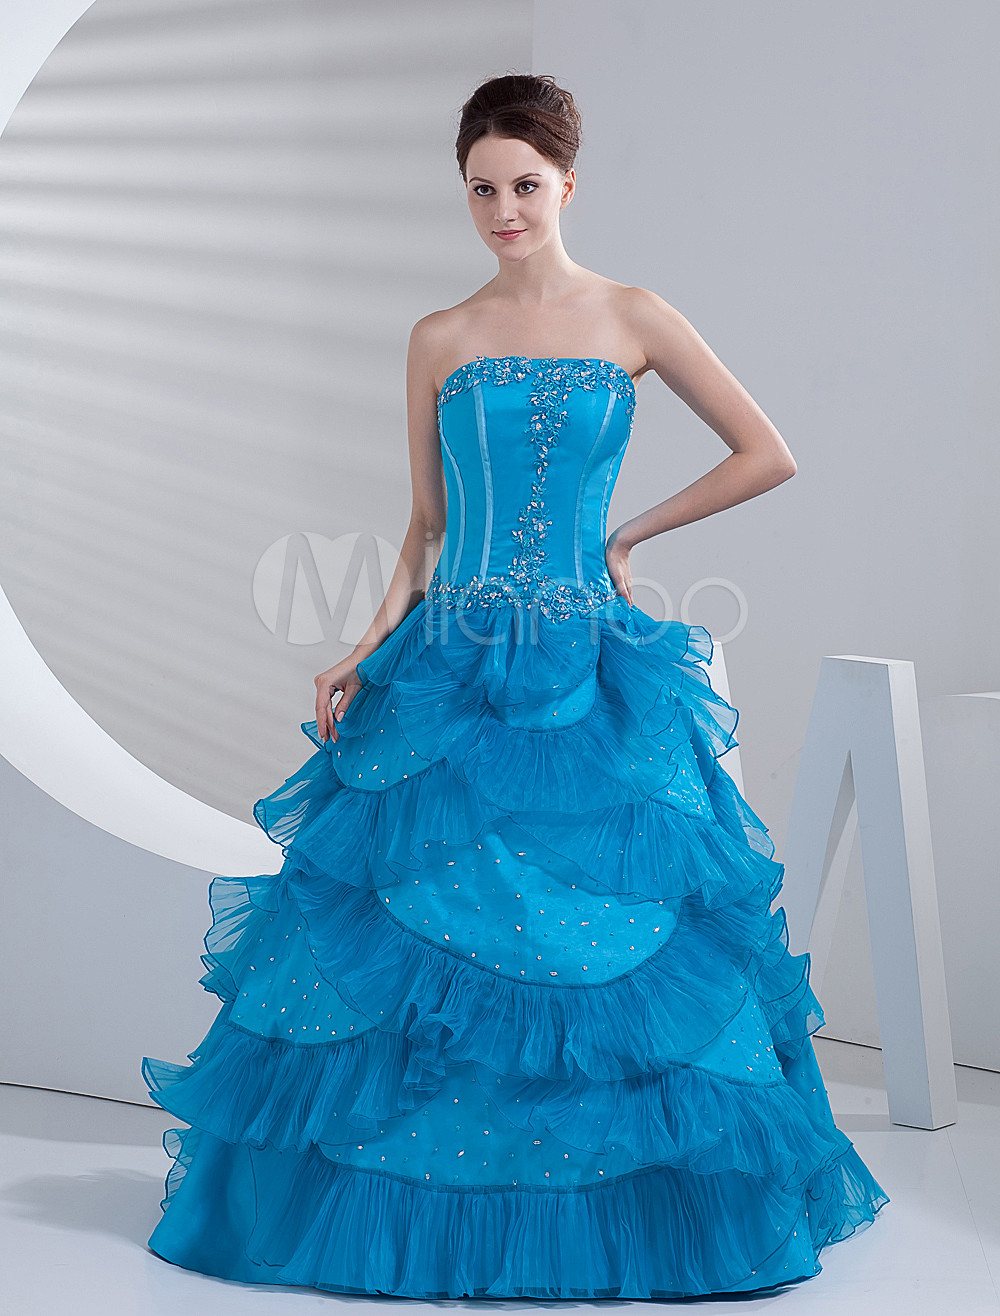 Blue Satin Organza Beautiful Women Prom Dress - Milanoo.com